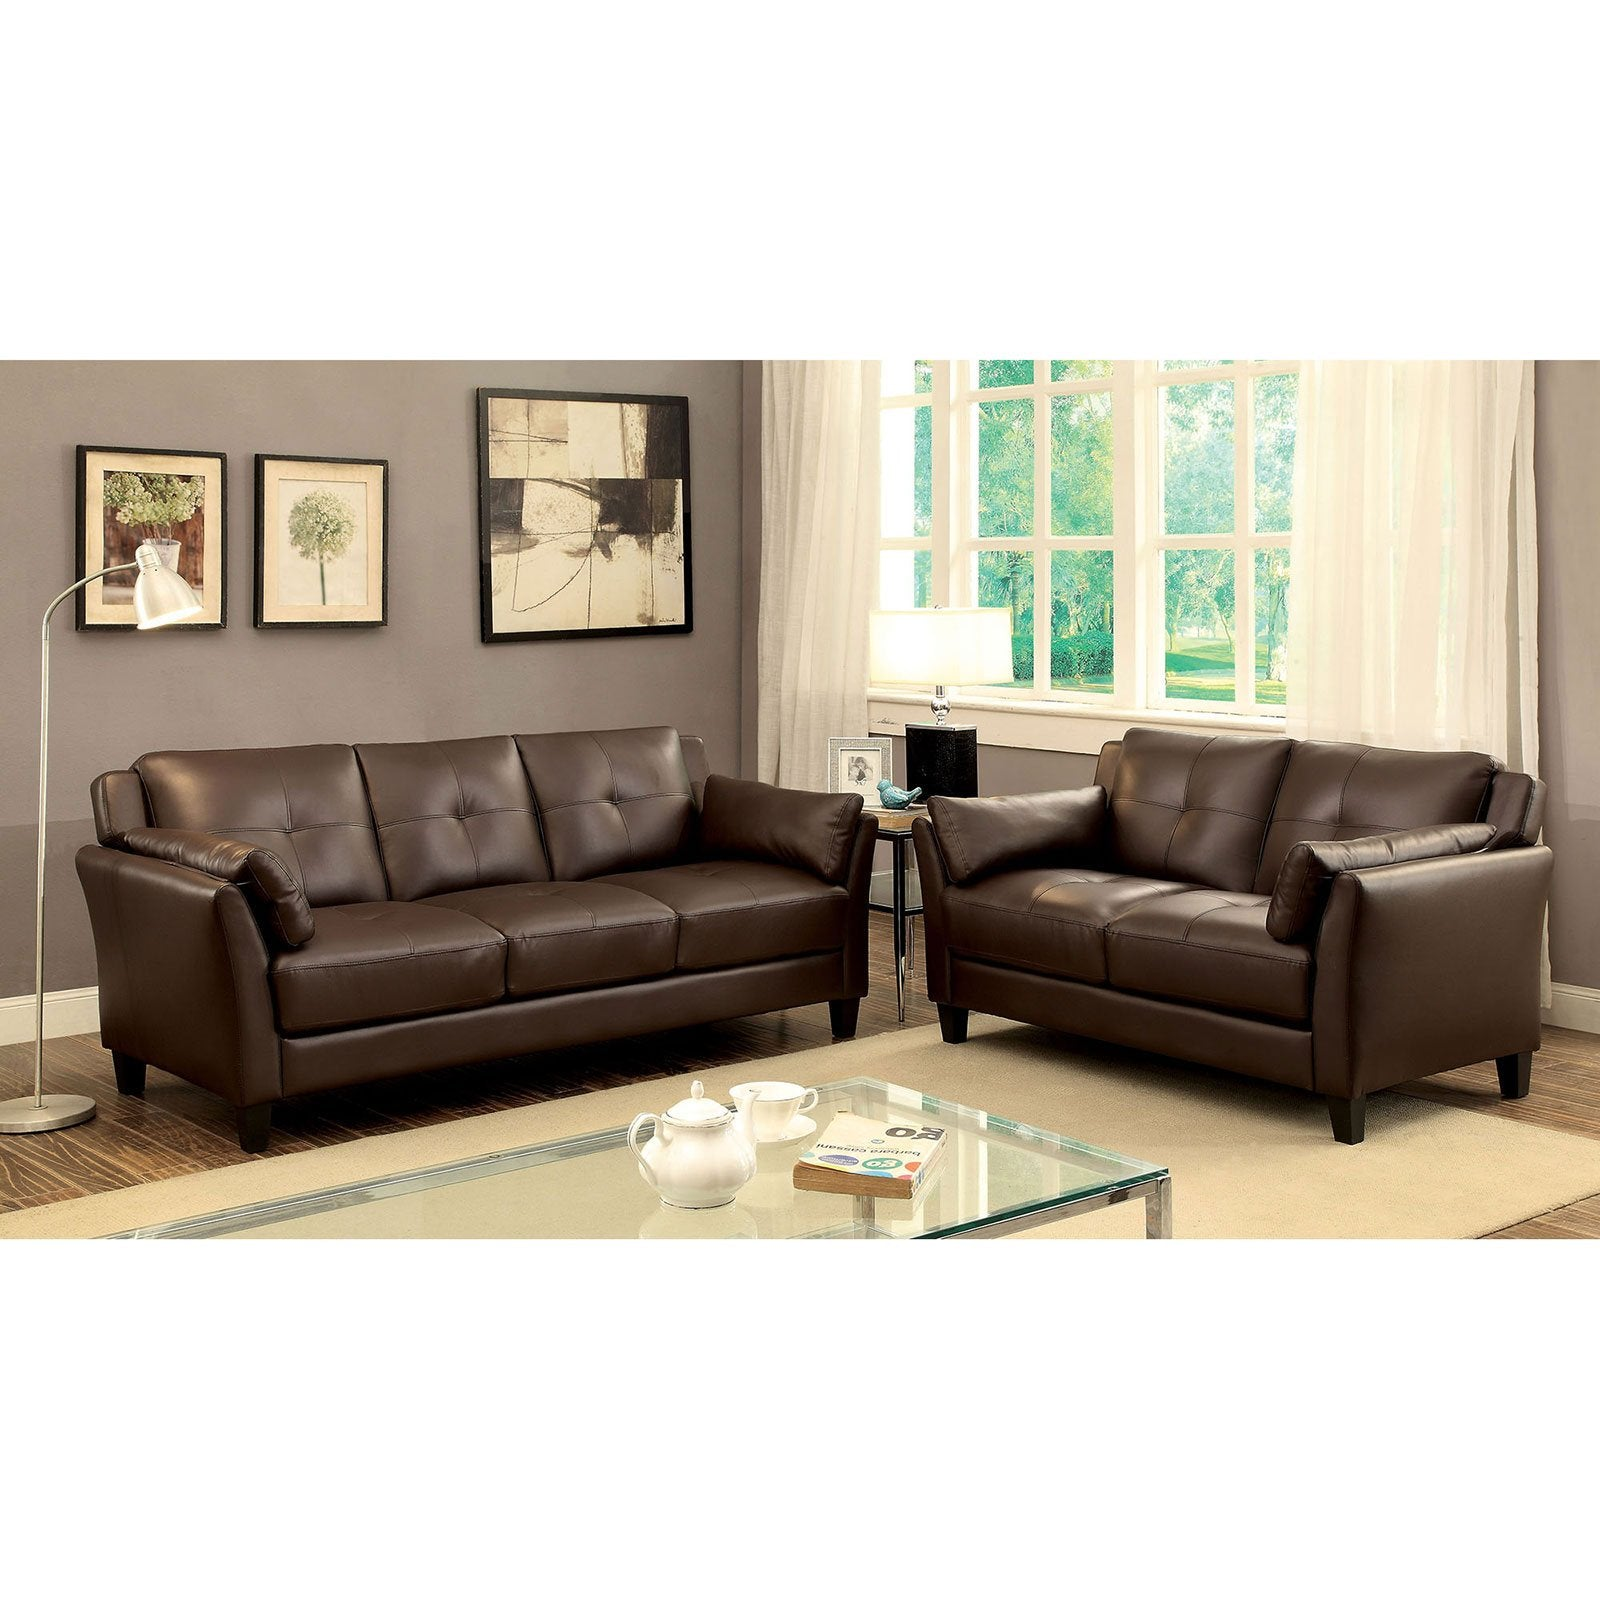 YSABEL Transitional Sofa + Love Seat, Brown - InteriorDesignsToGo.com